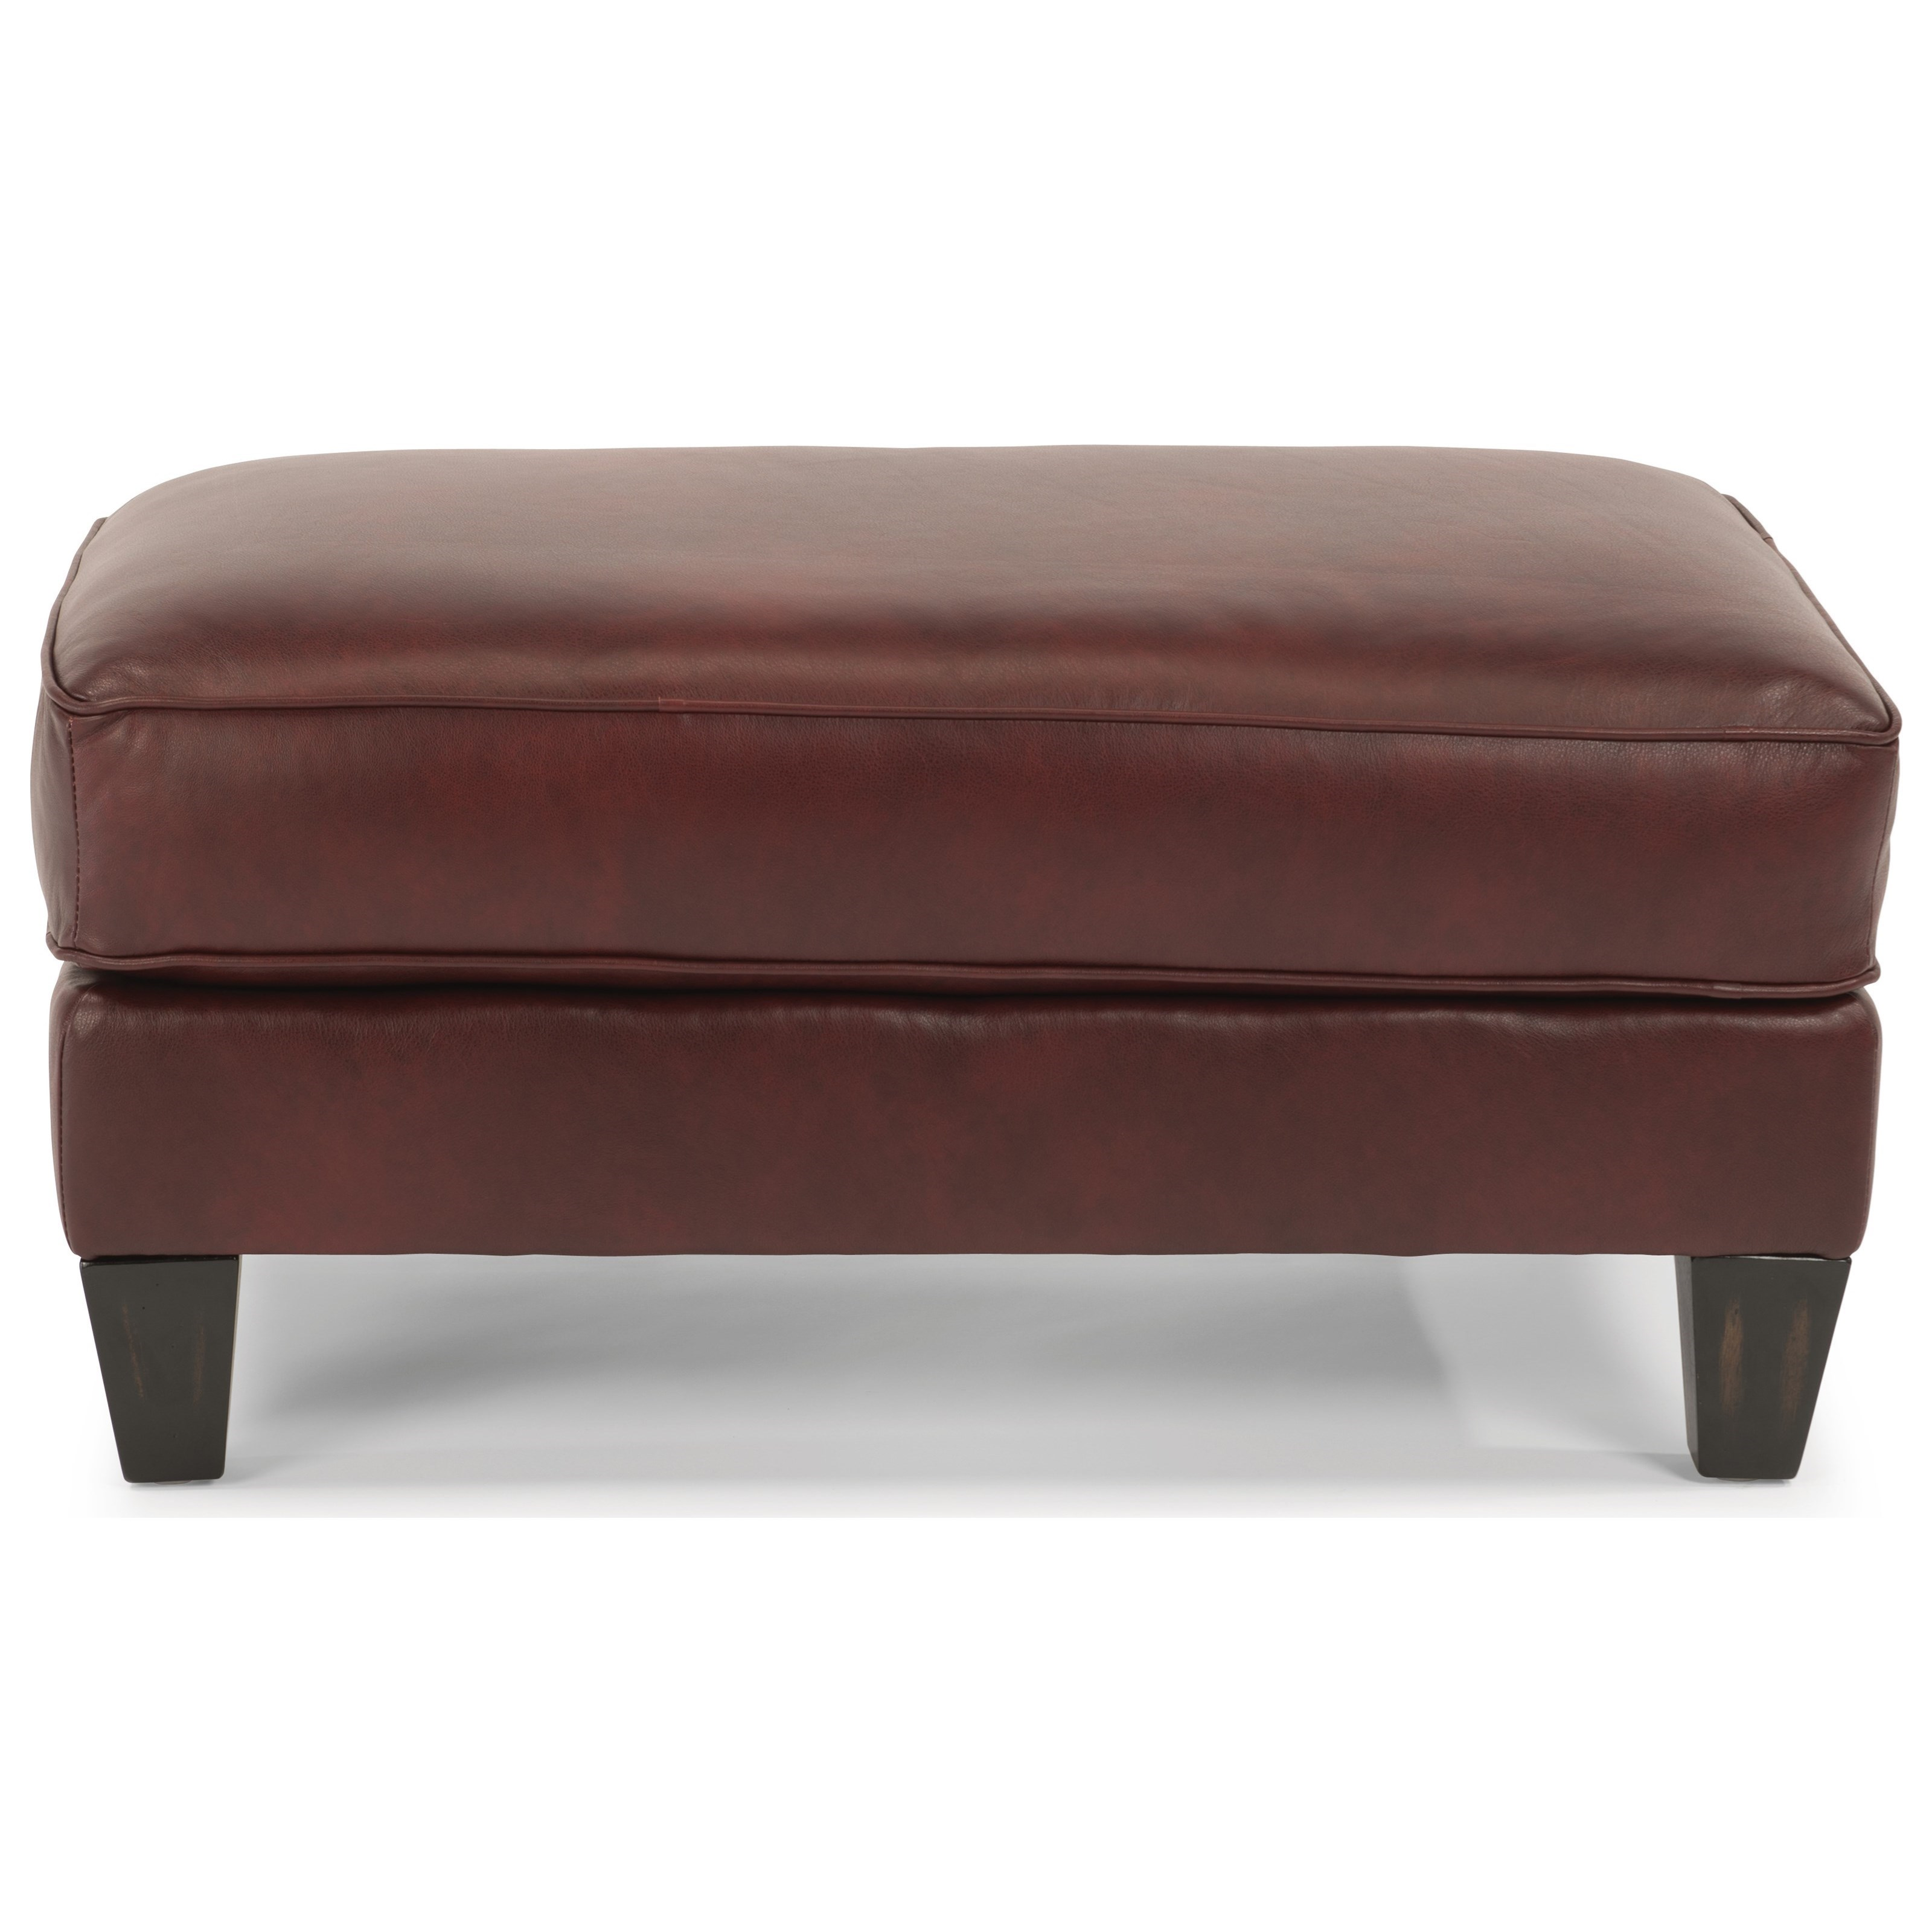 Westside Cocktail Ottoman by Flexsteel at Fisher Home Furnishings